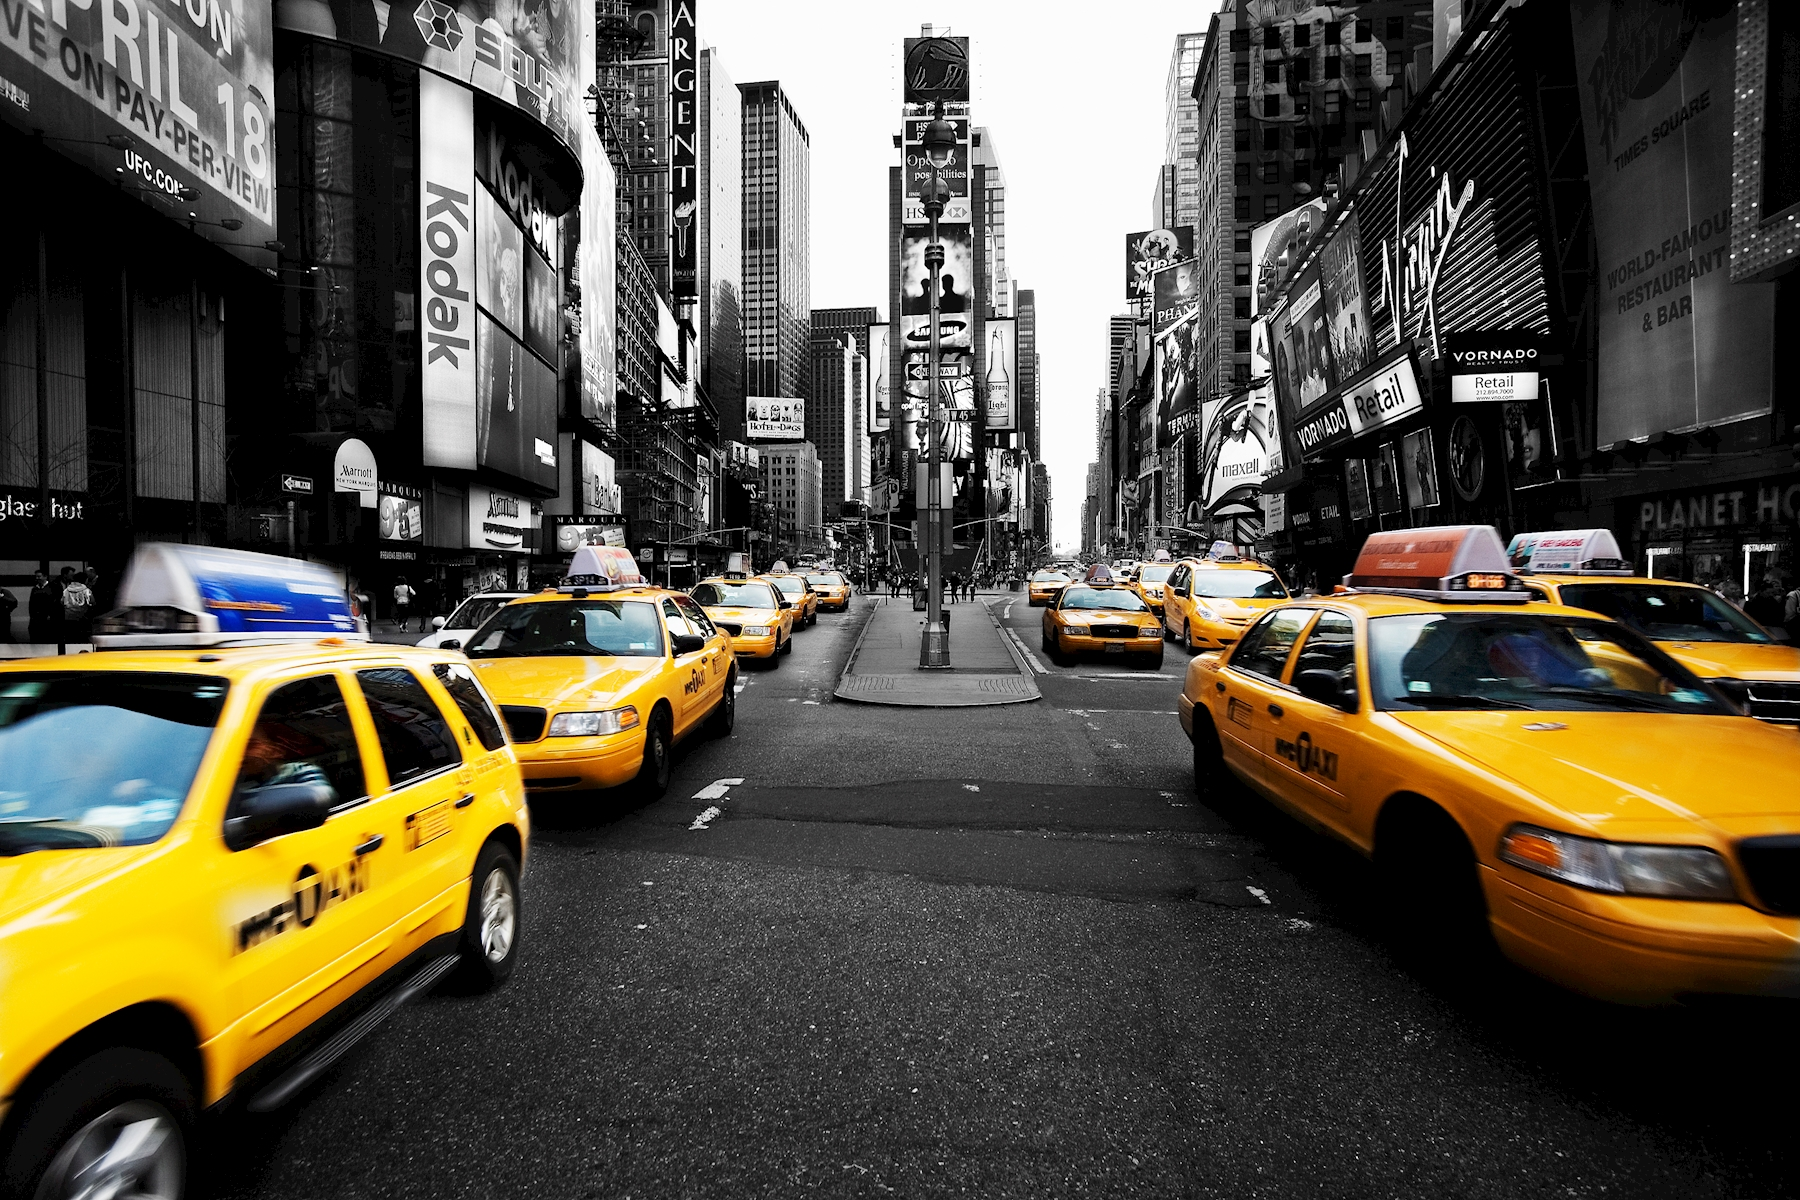 Times Square cabs New York posters & prints by mats lindkvist